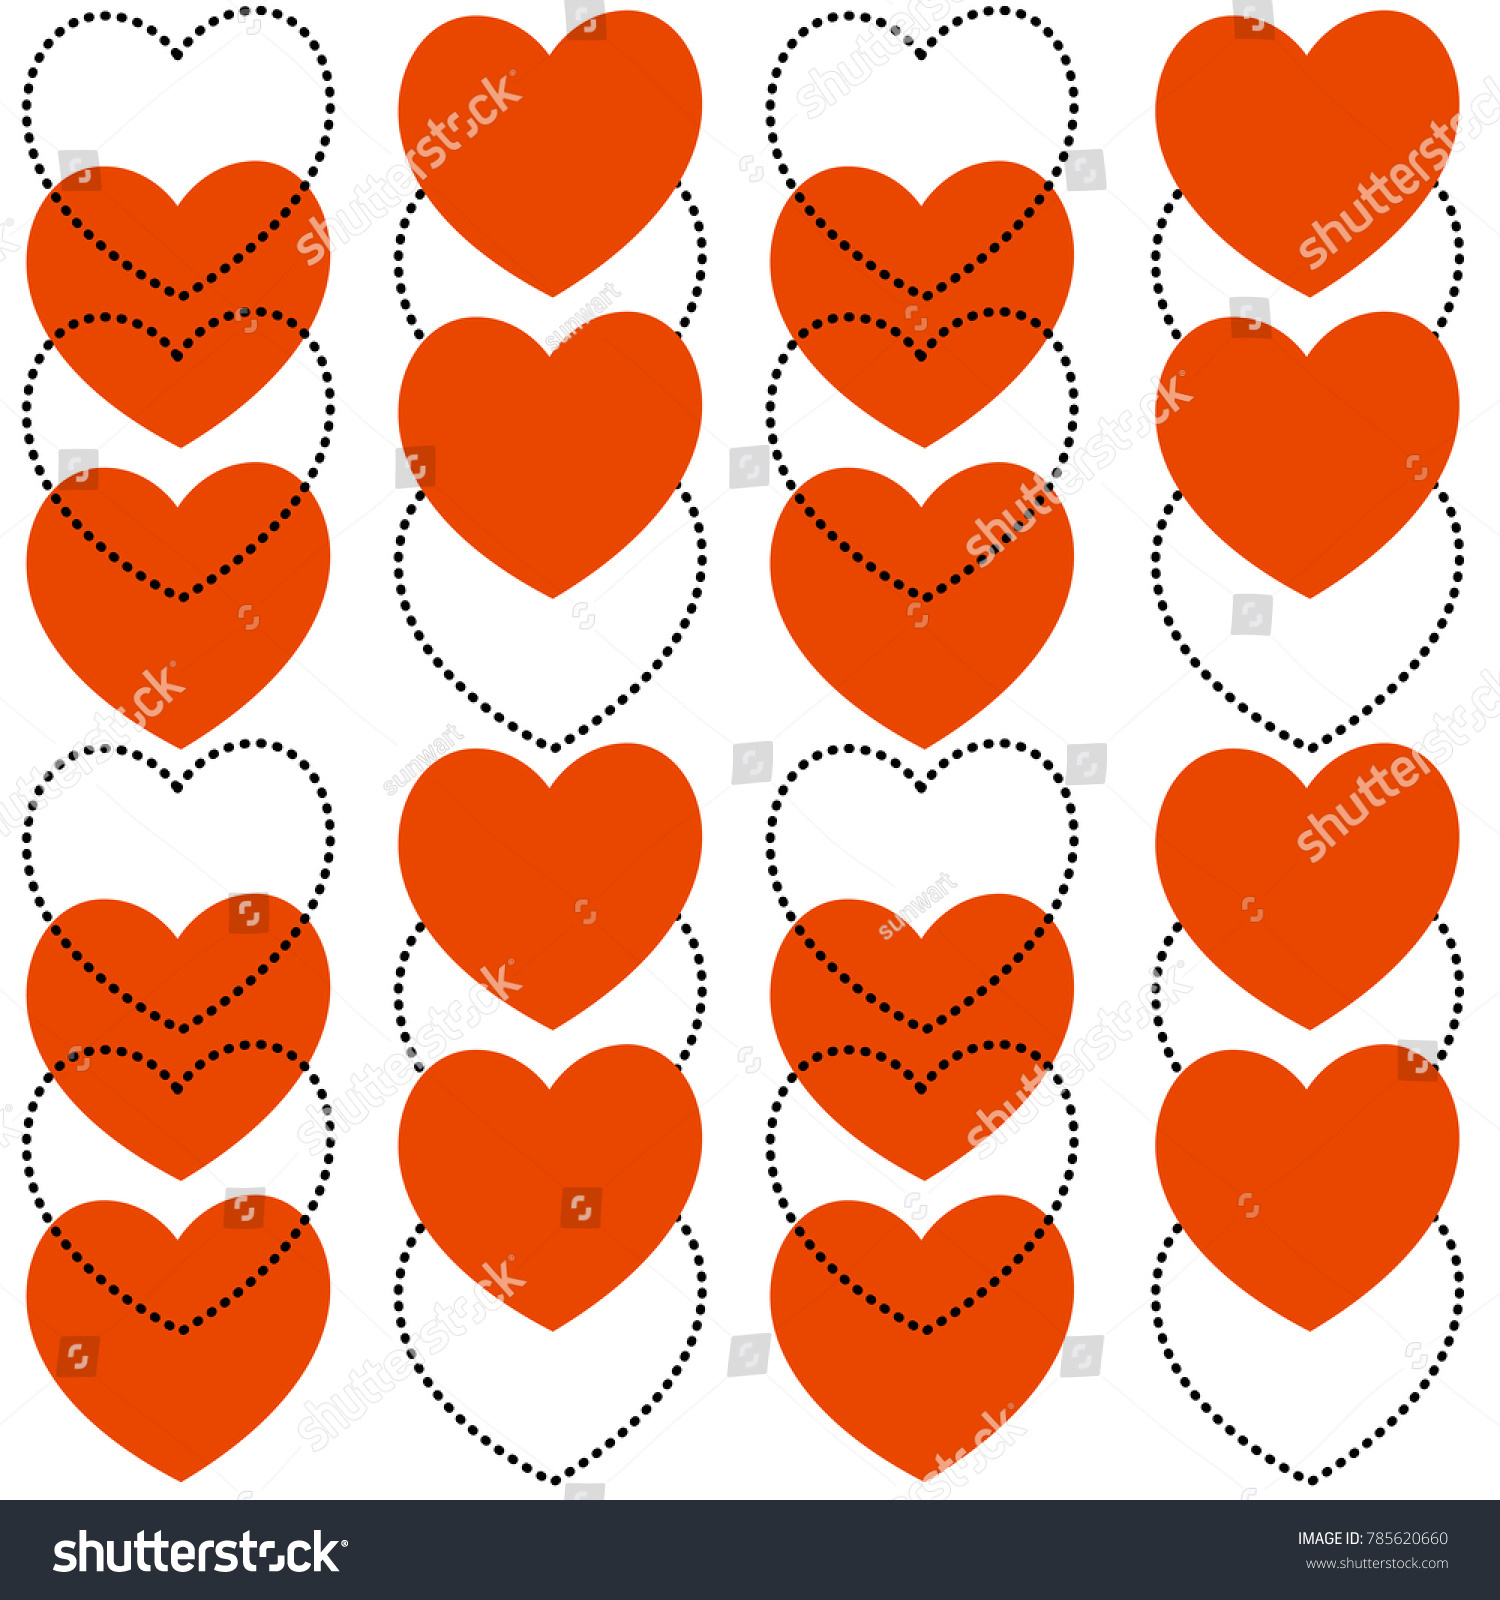 Vector seamless heart pattern love symbol stock vector 785620660 vector seamless heart pattern love symbol graphic background red and black doted line hearts buycottarizona Images